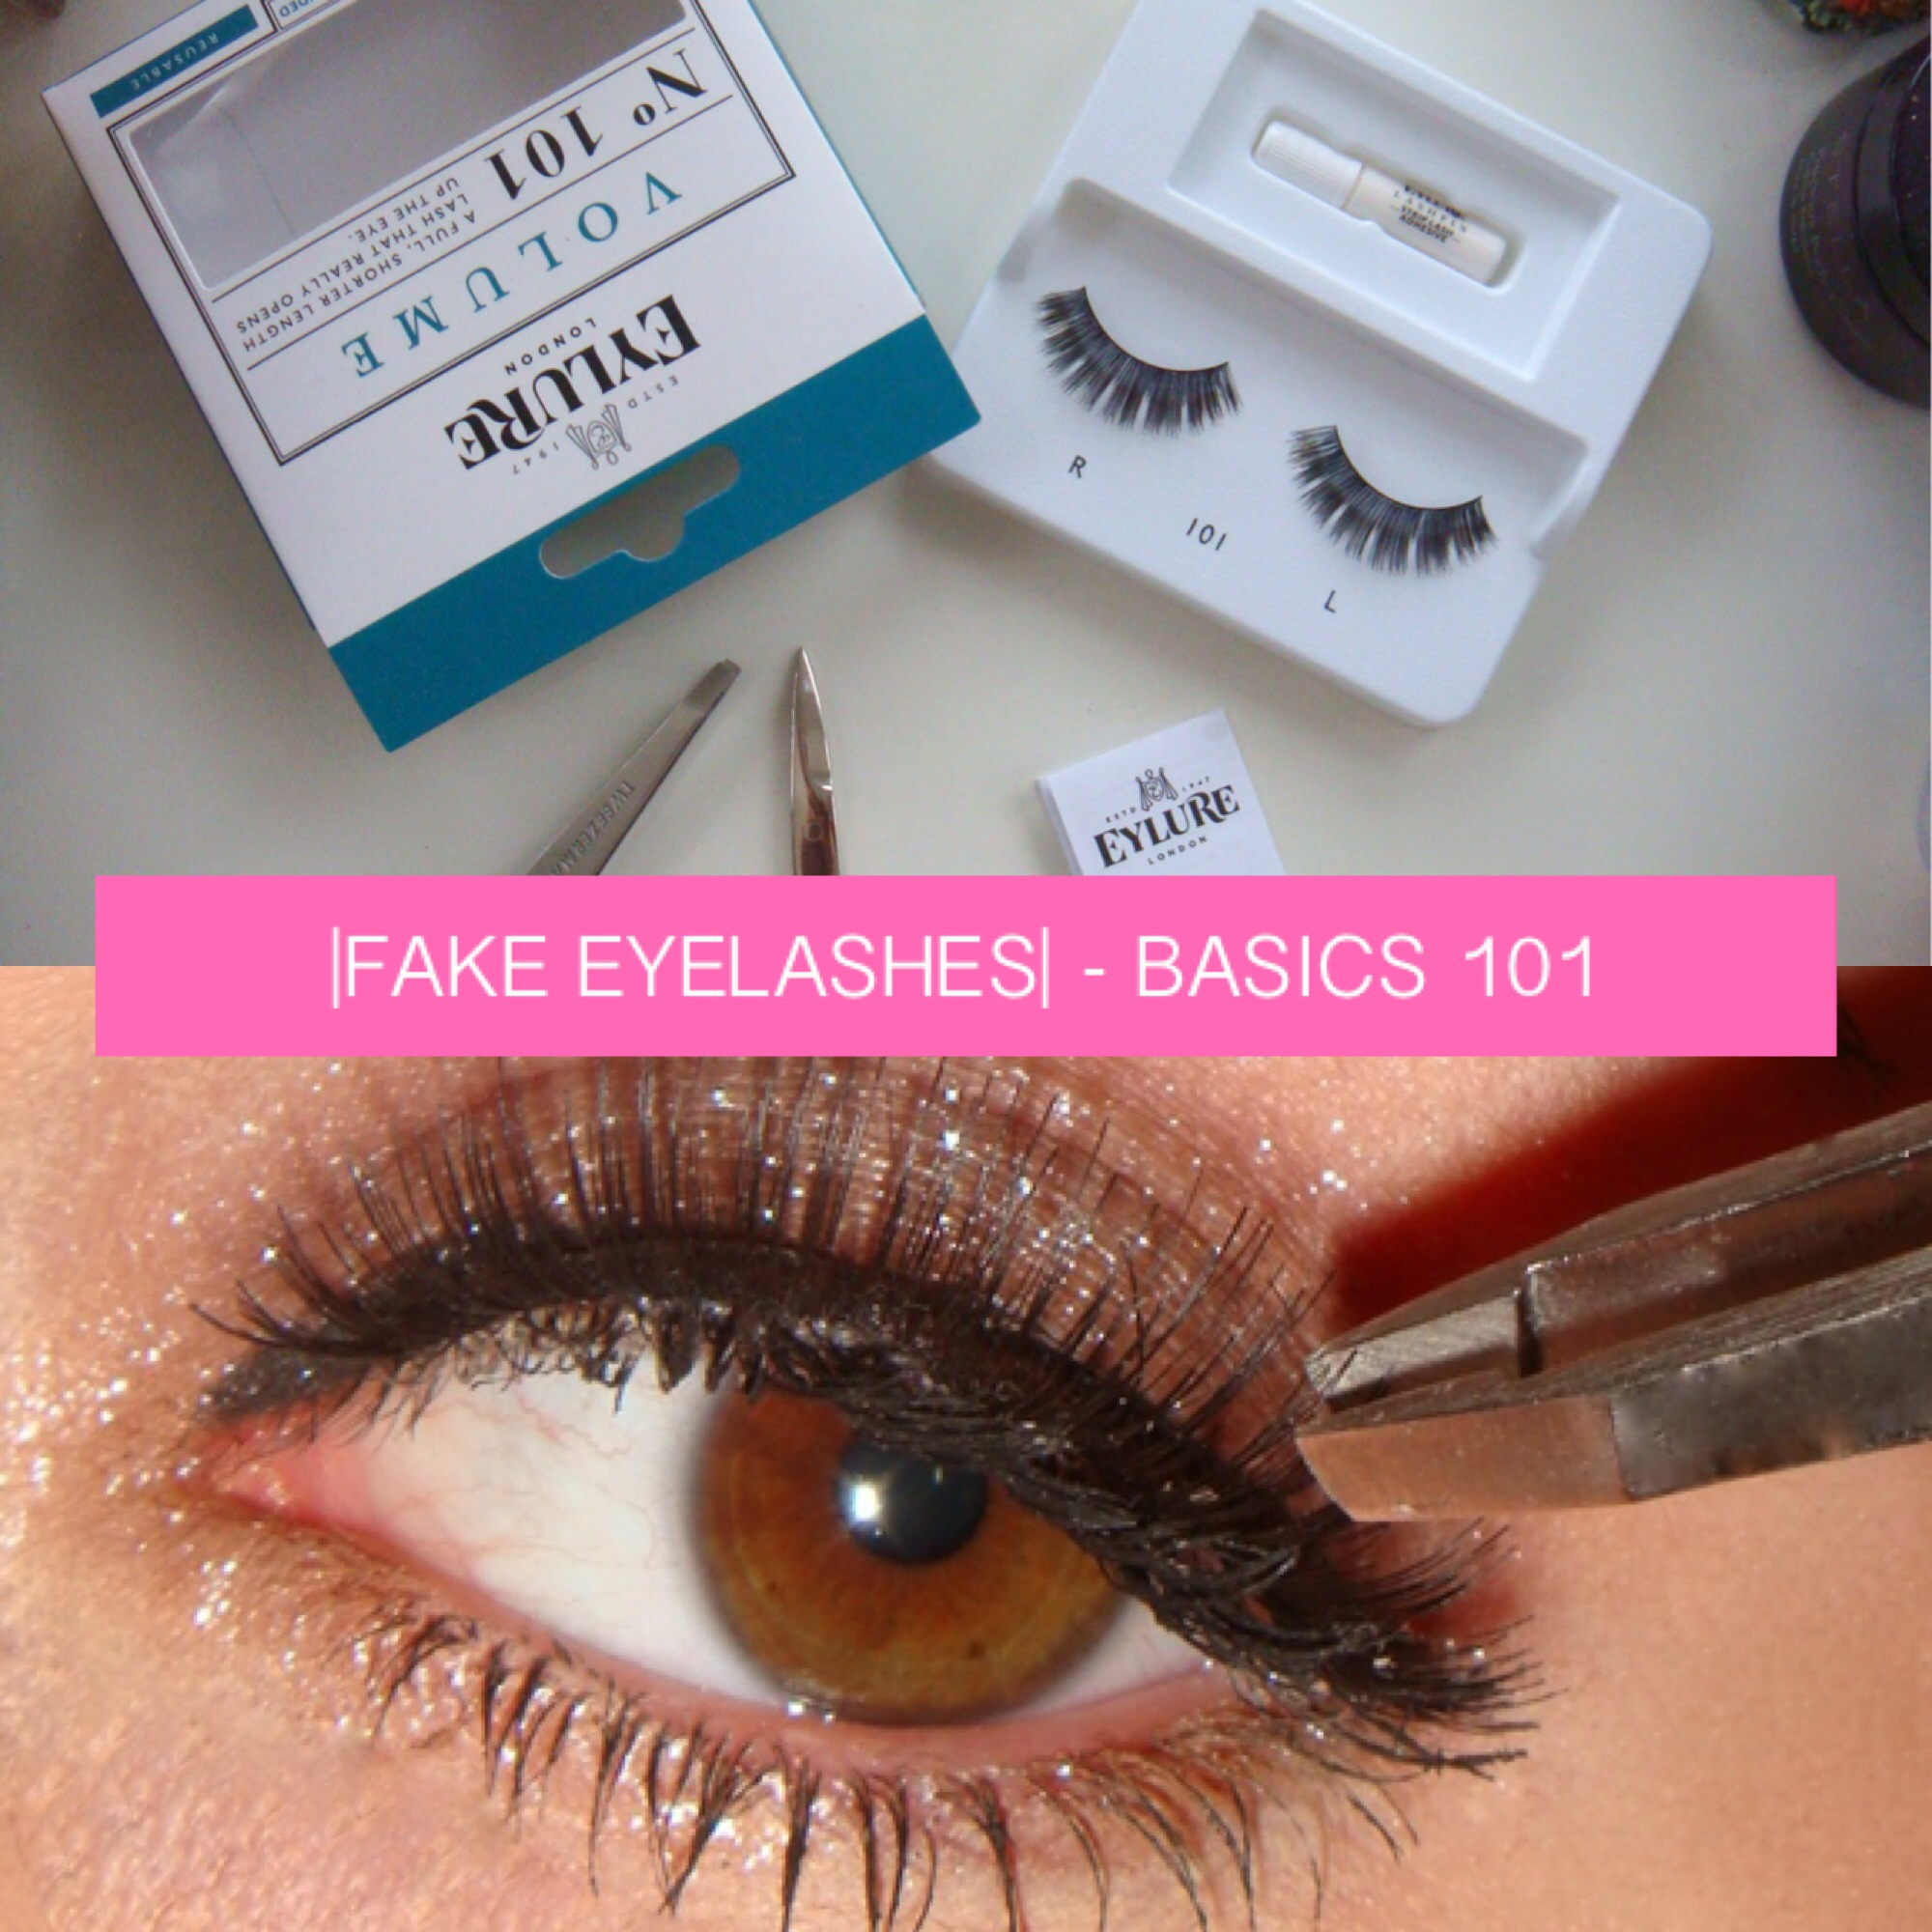 fake eyelashes basics i am serene l i am very excited to share will you all my tips on fake eyelashes fake eyelashes are the perfect addition to your eye makeup looks